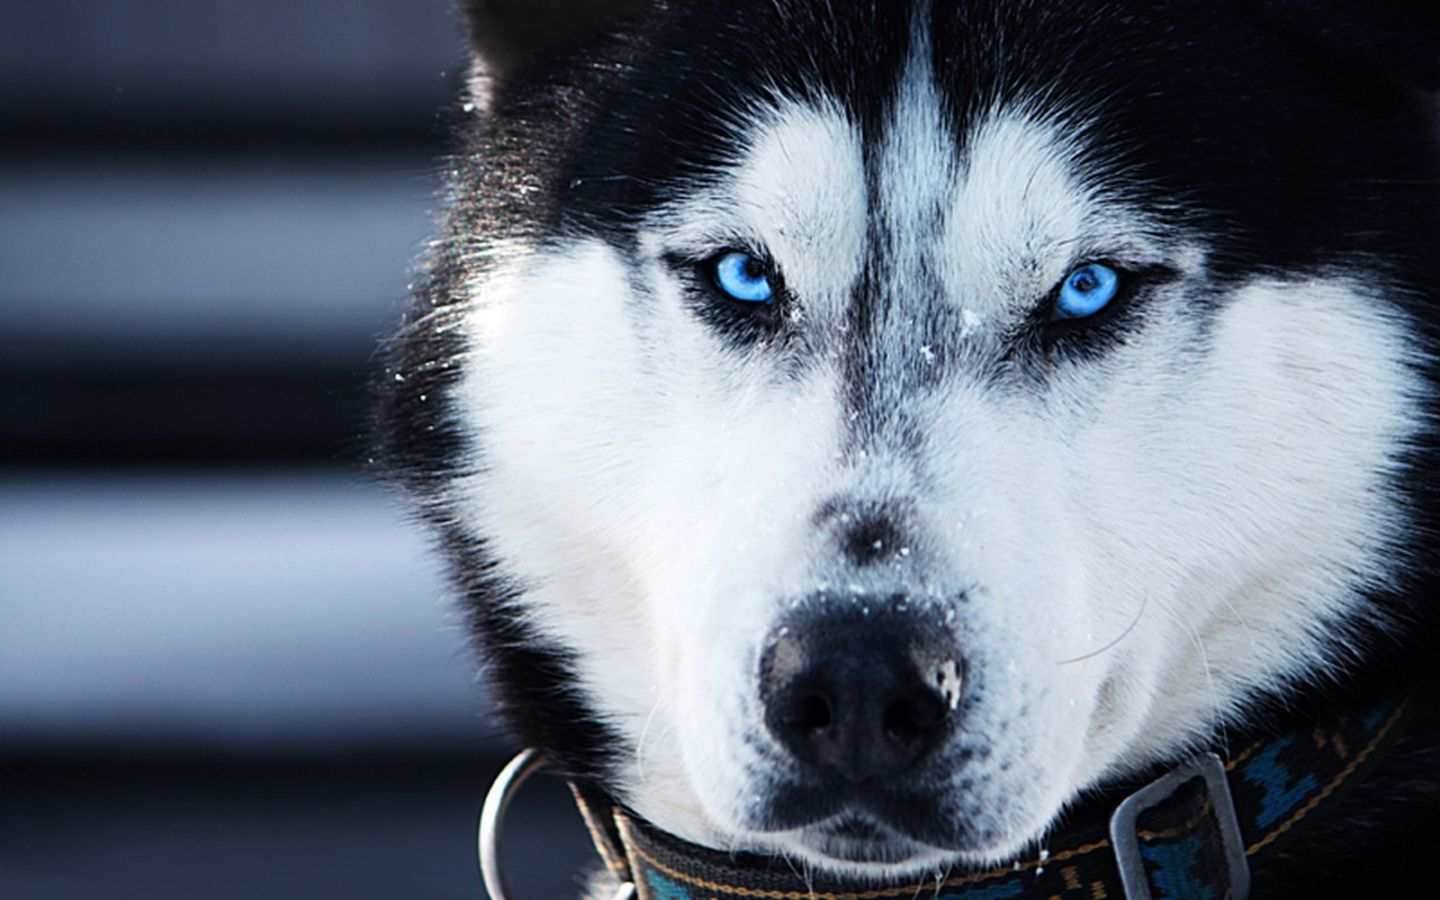 siberian husky puppies with blue eyes wallpaper | hd wallpapers